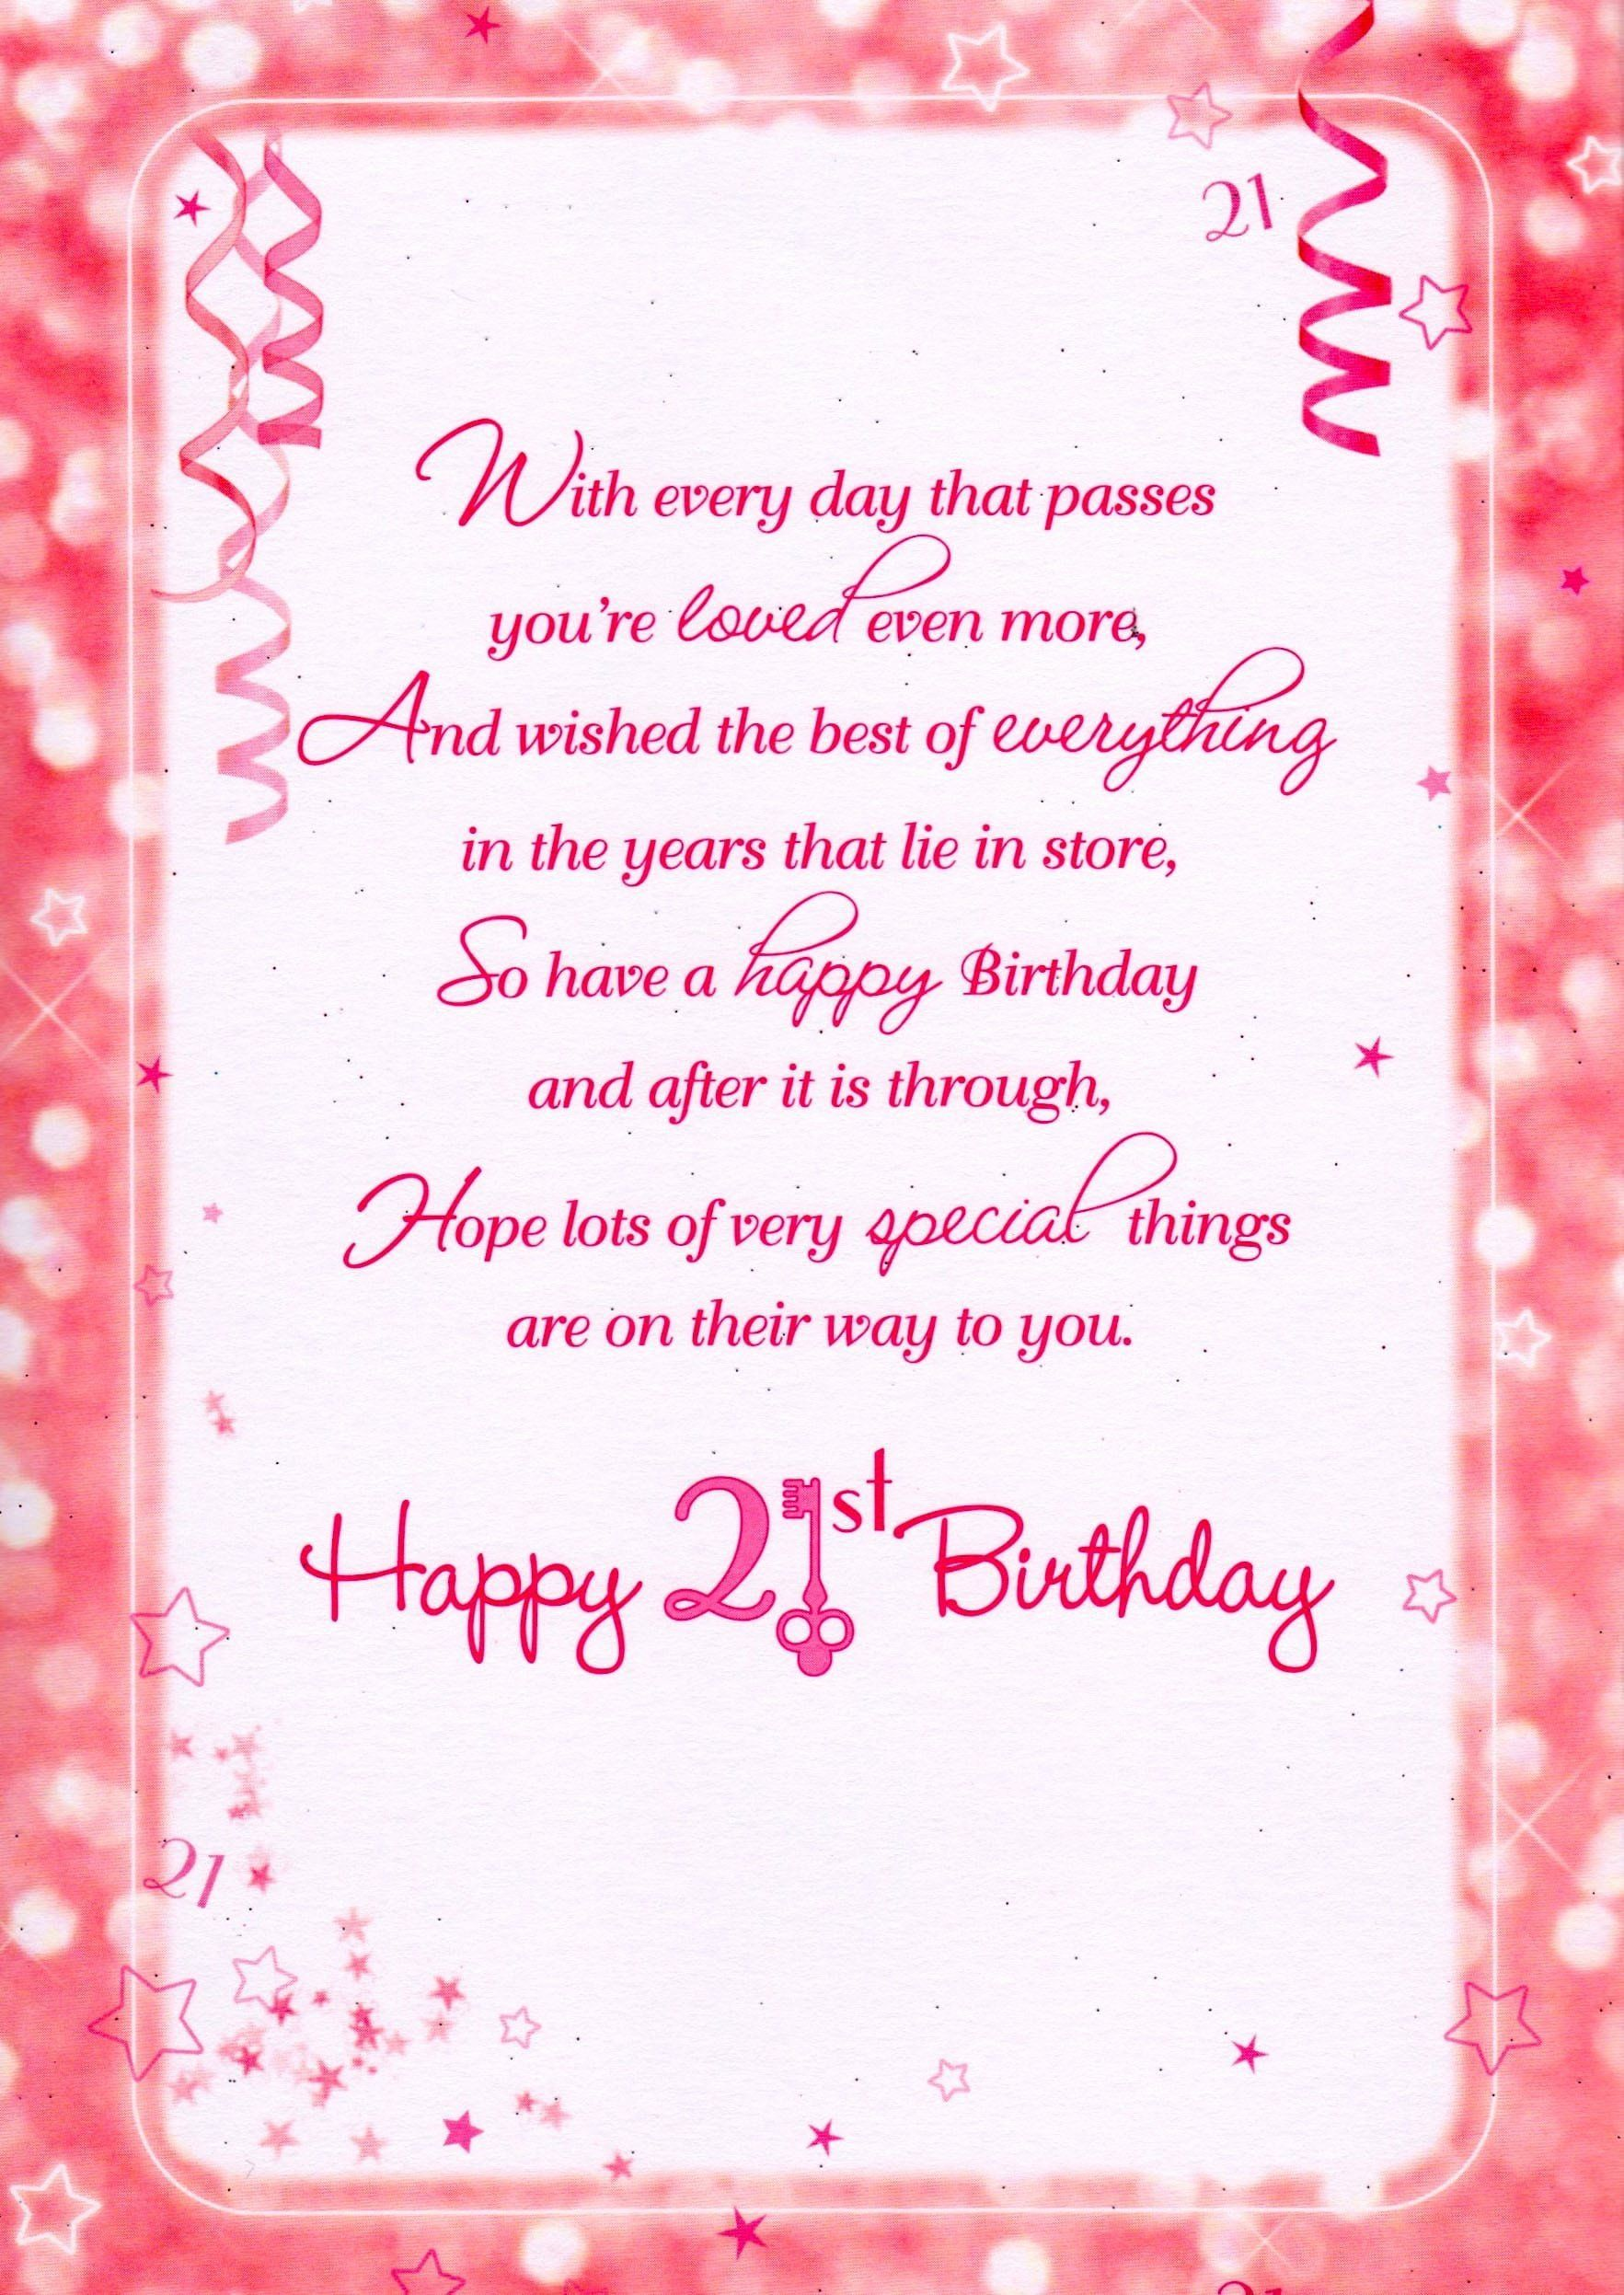 Happy 50th Birthday Mom in 2020 21st birthday messages